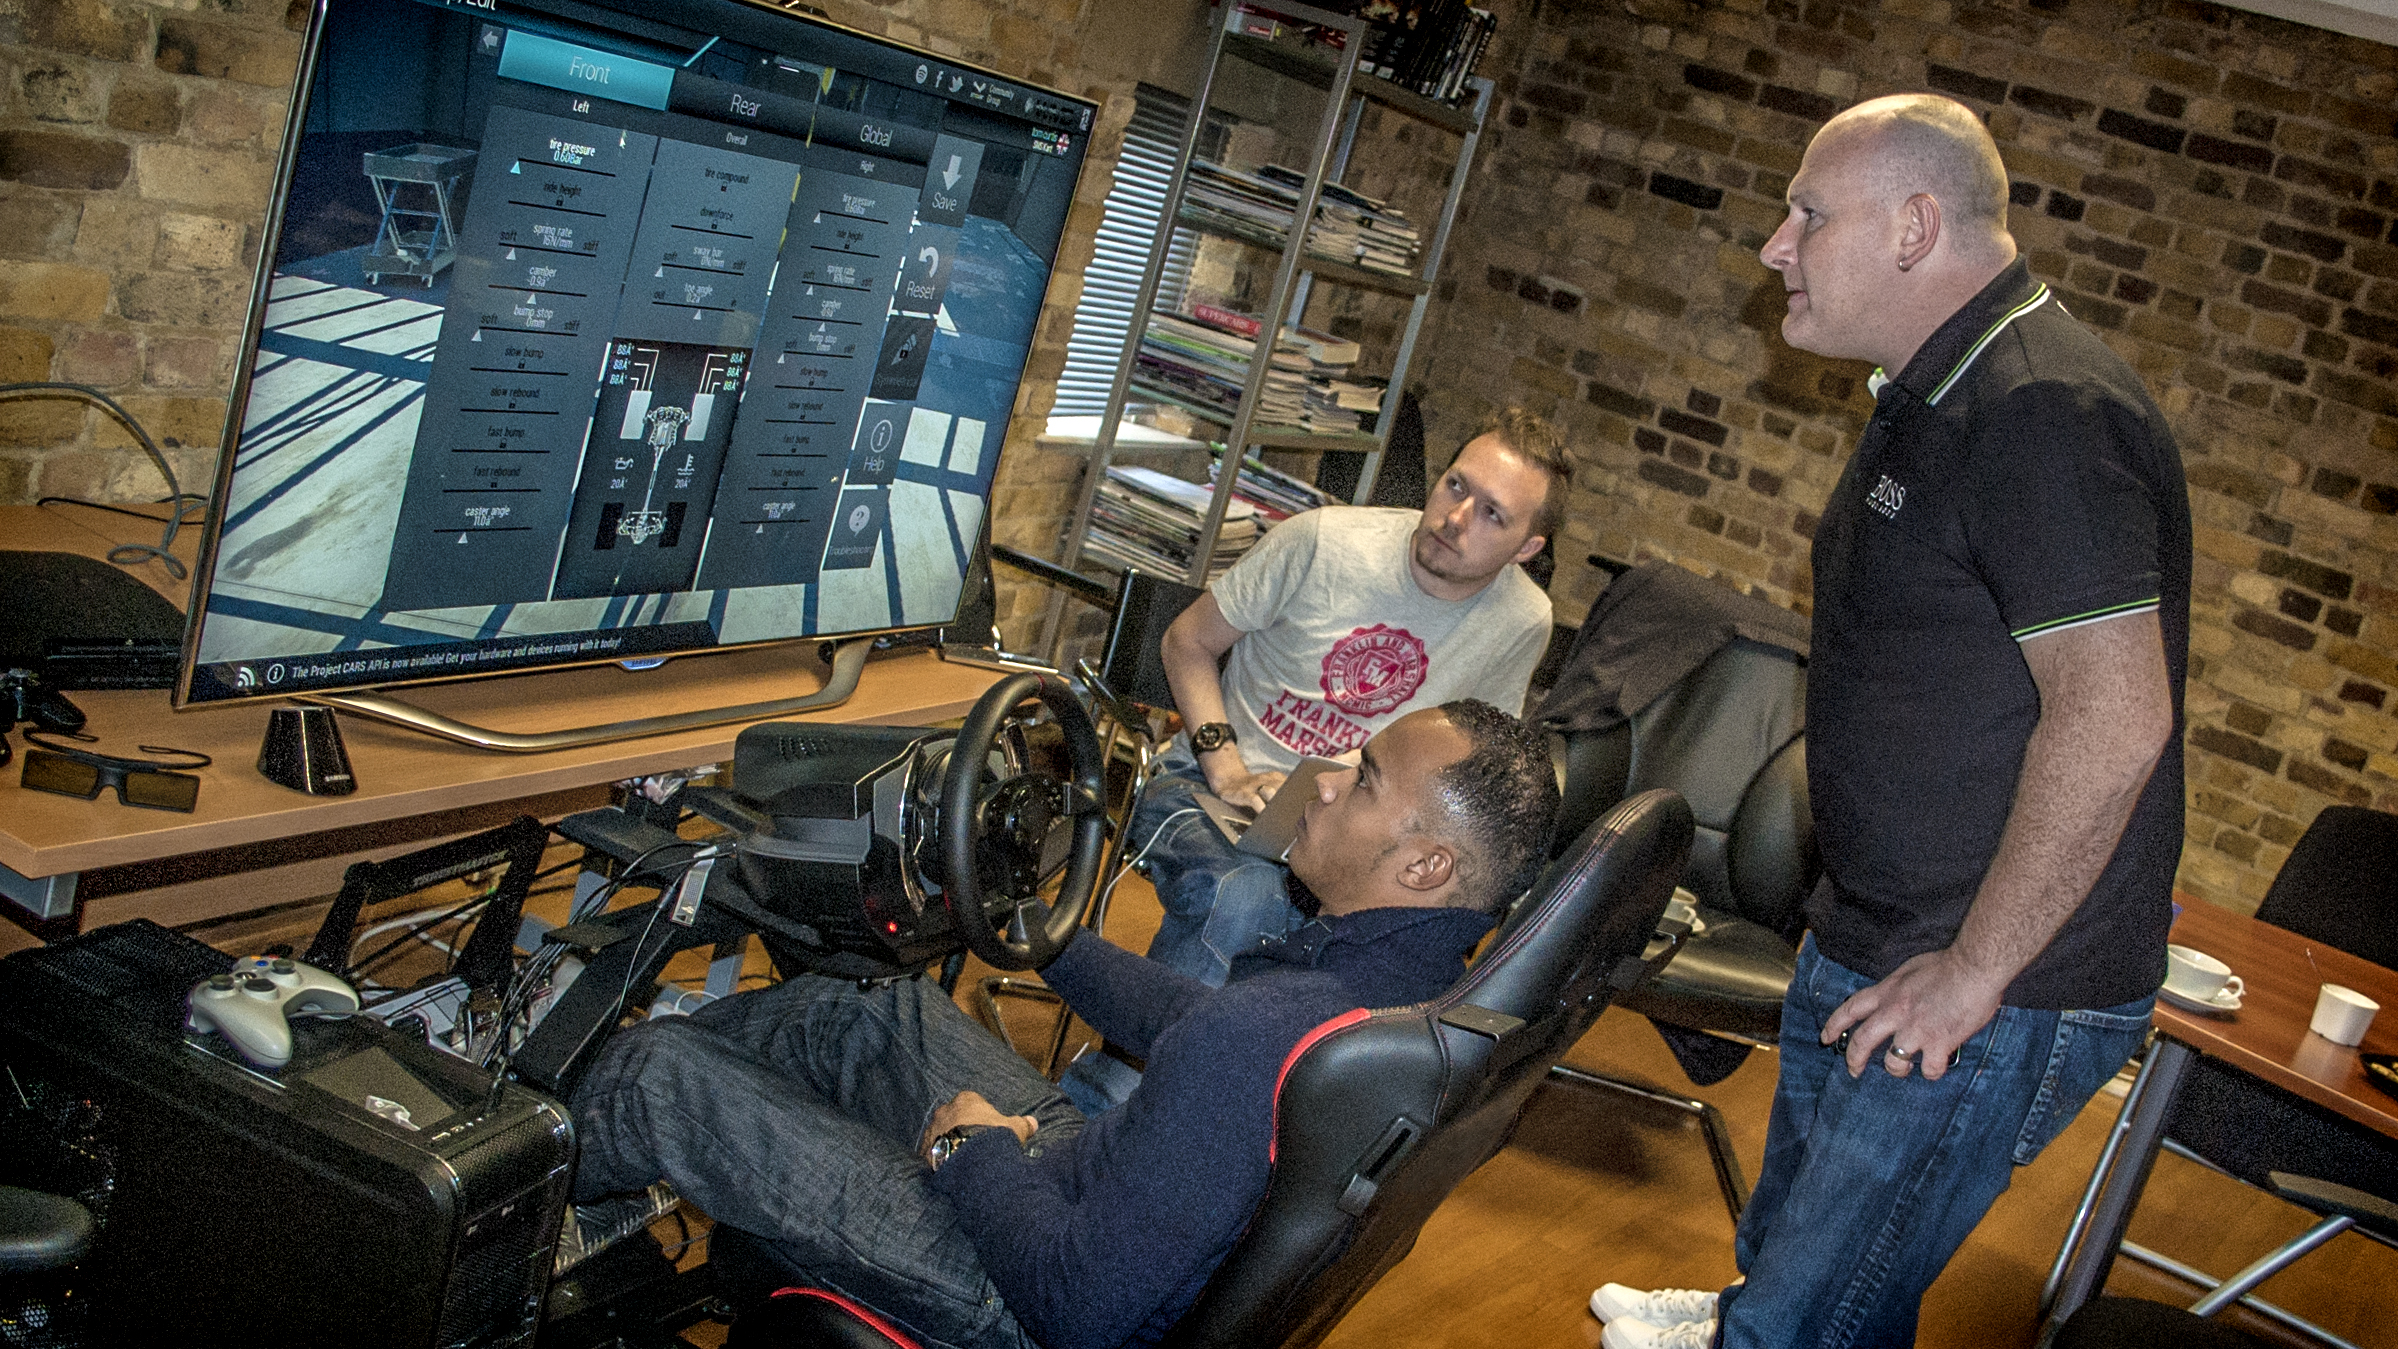 Online gaming was his gateway to professional racing